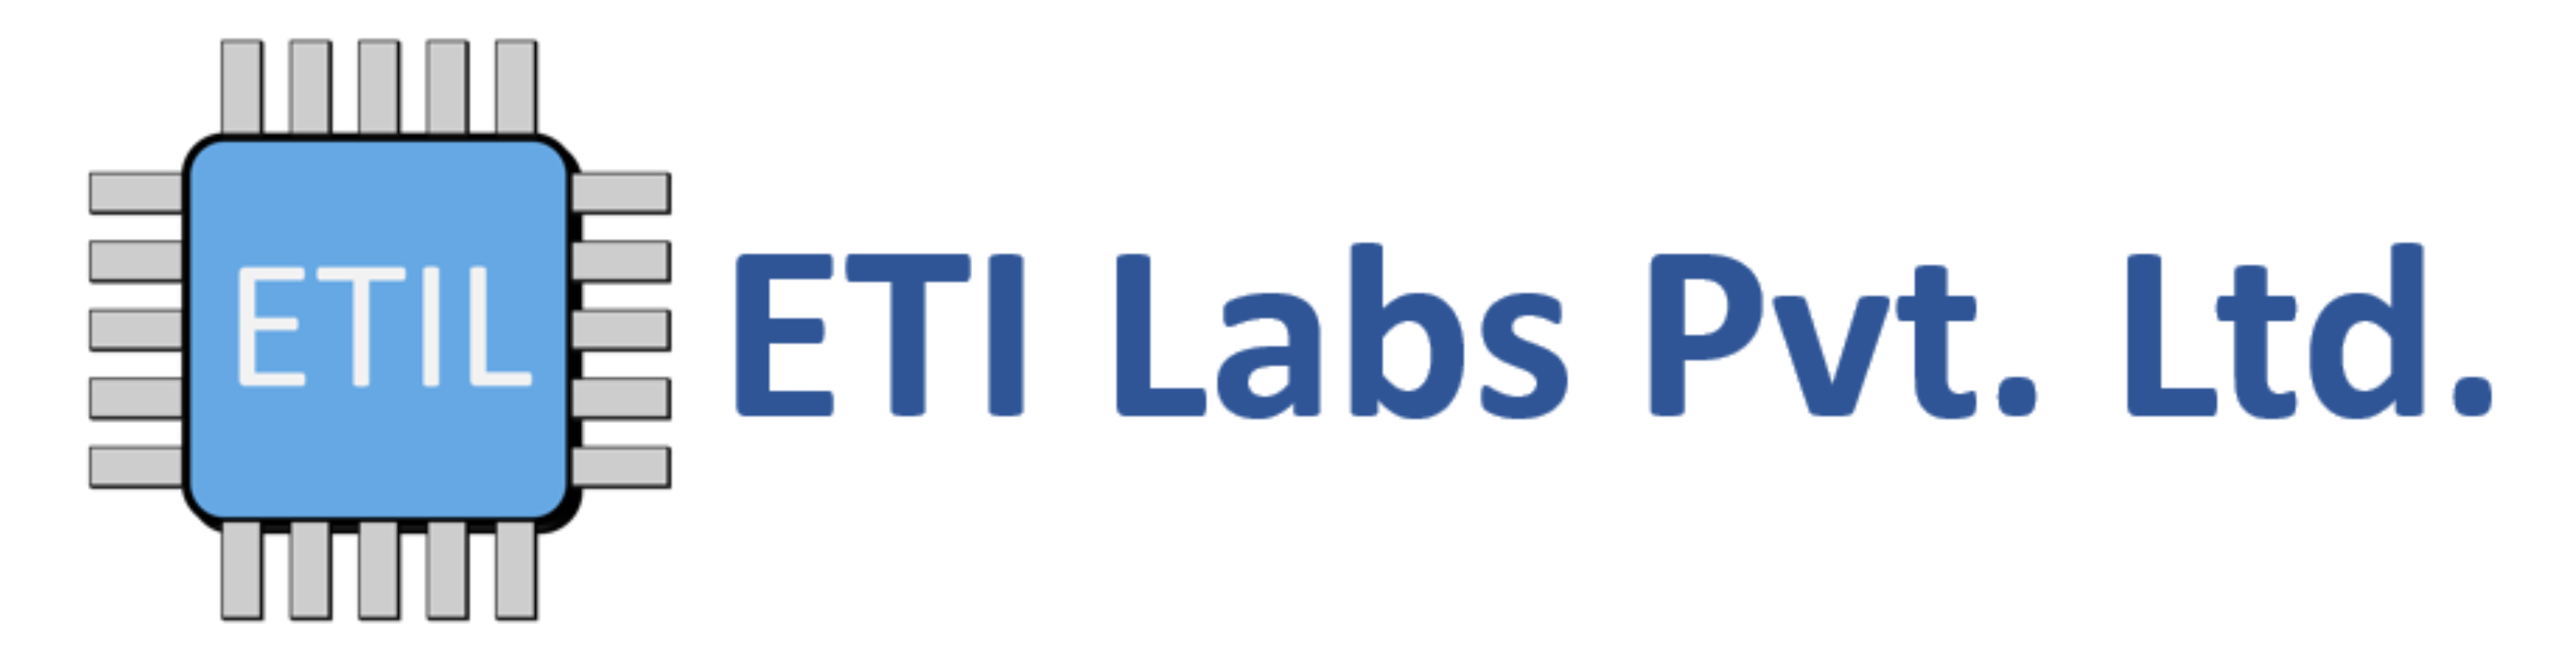 ETI Labs Pvt. Ltd.